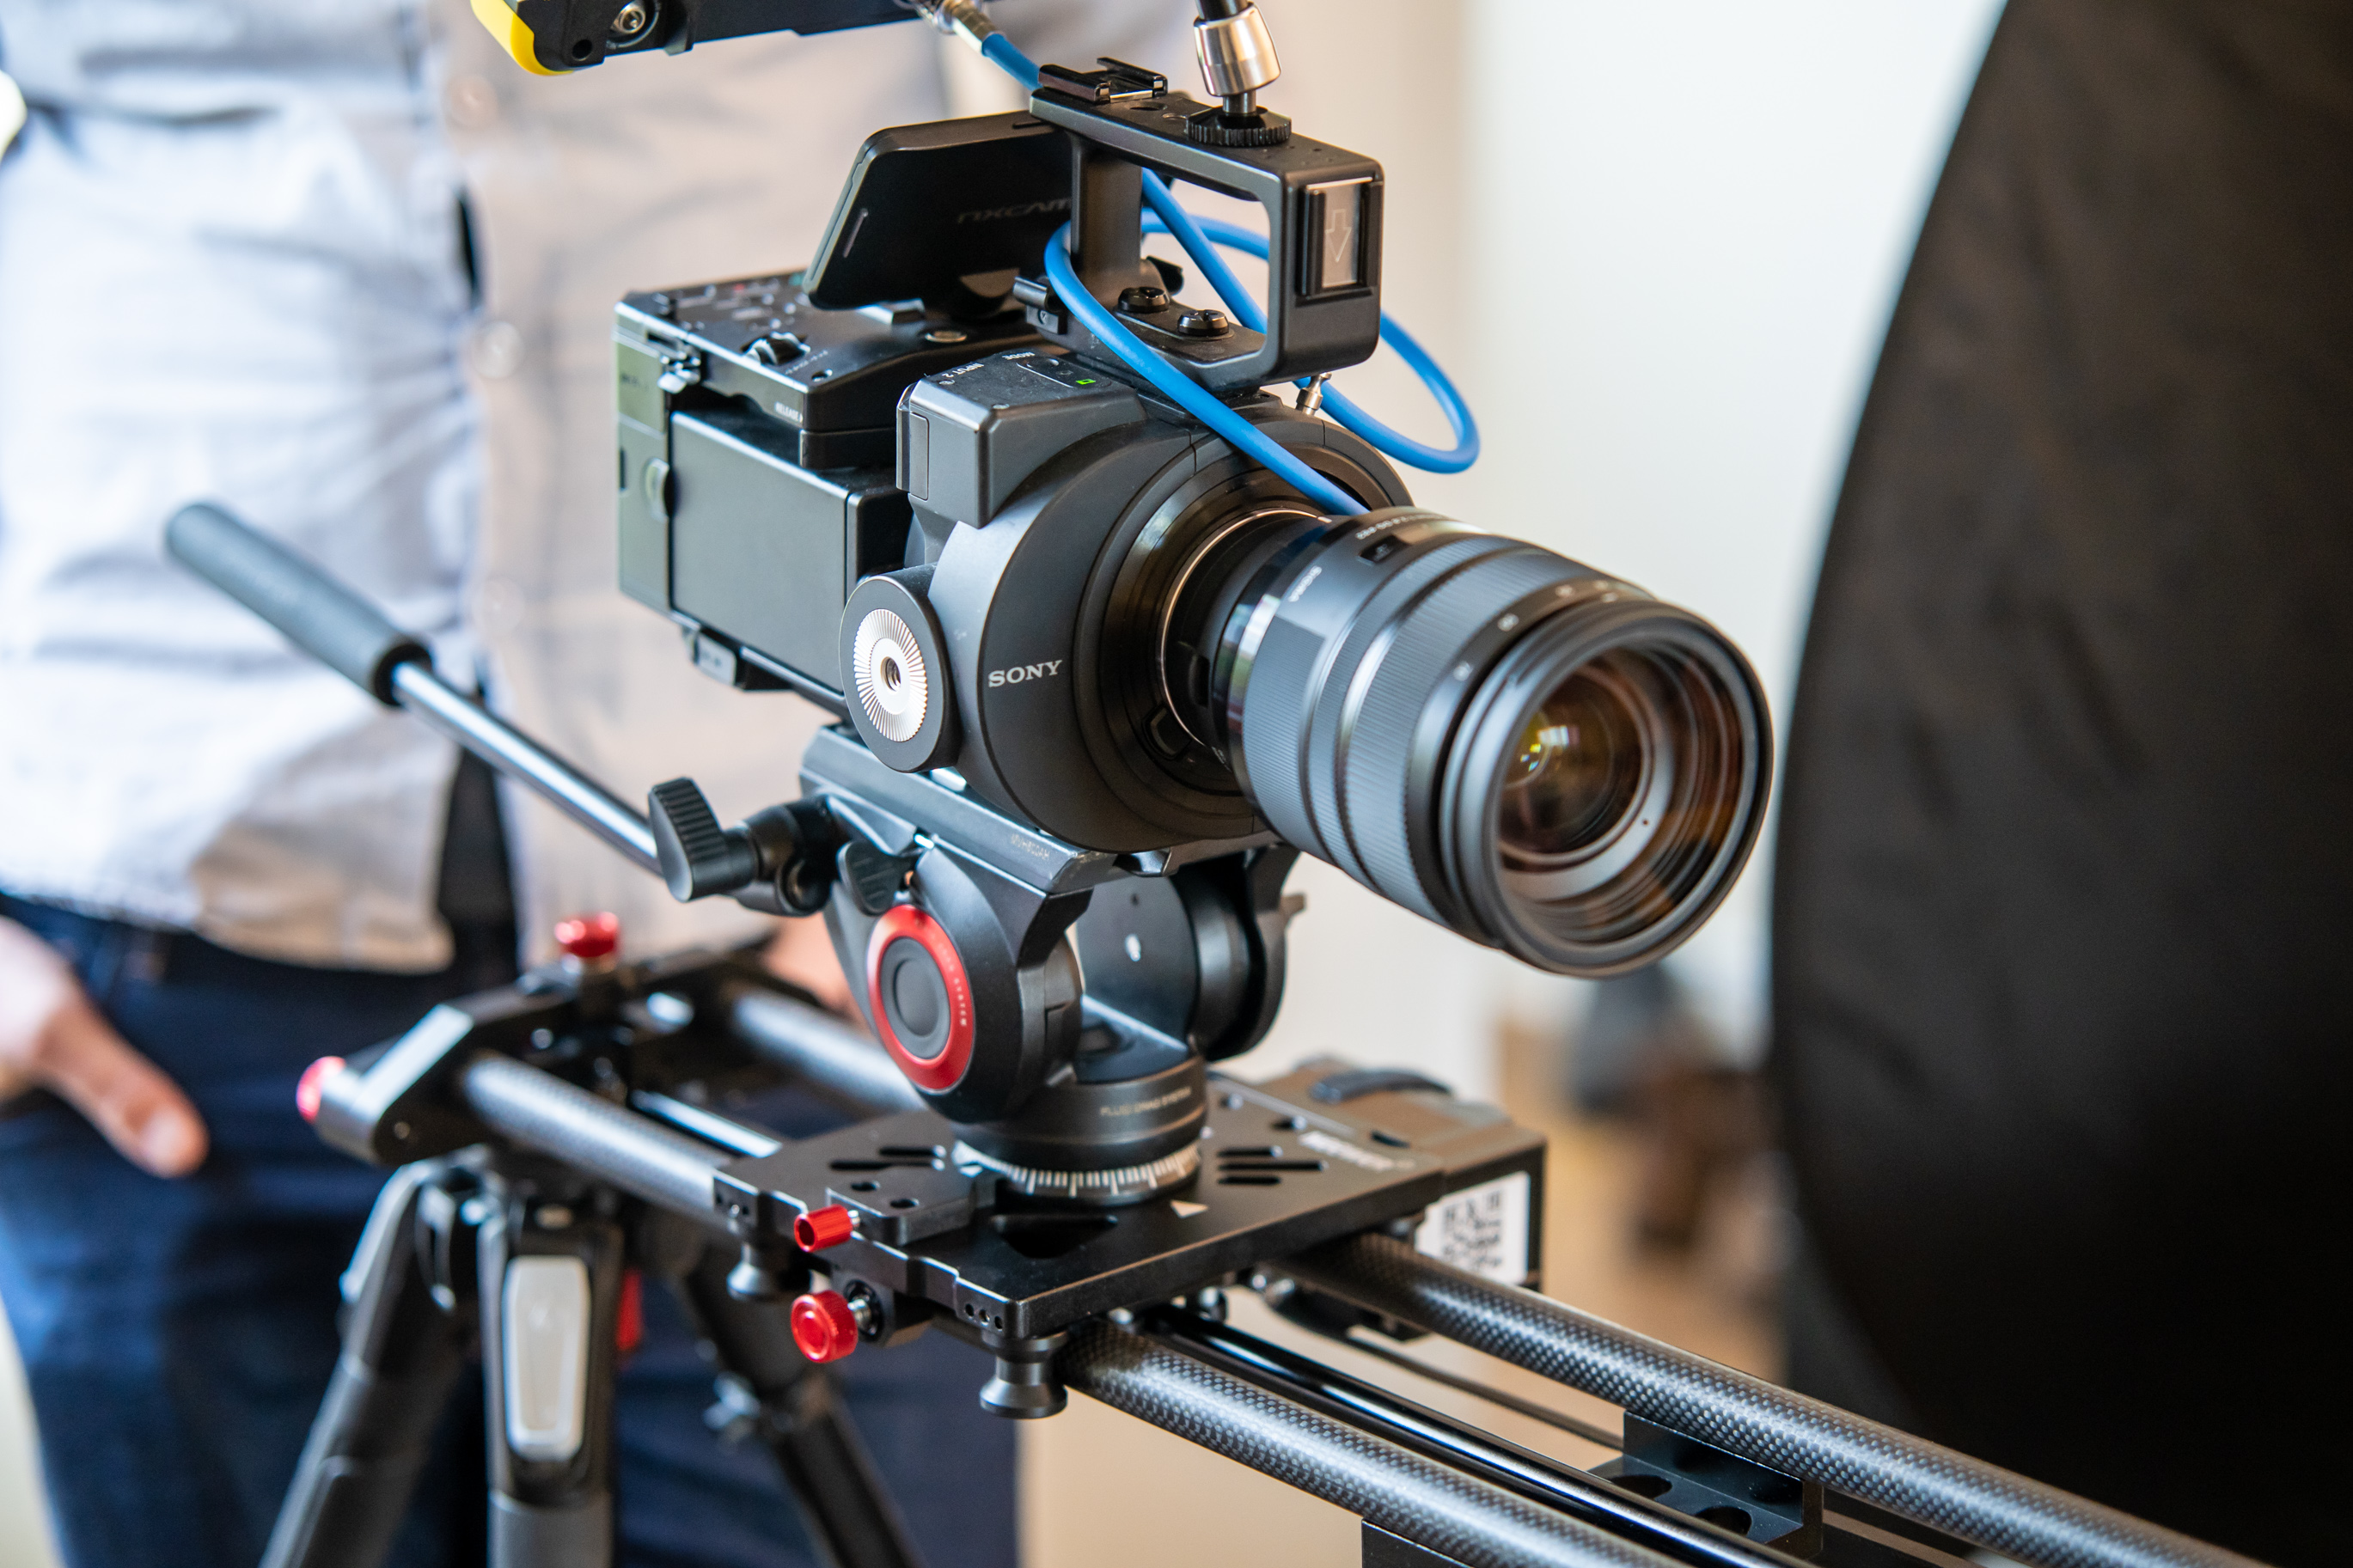 Sony FS700 on a camera slider